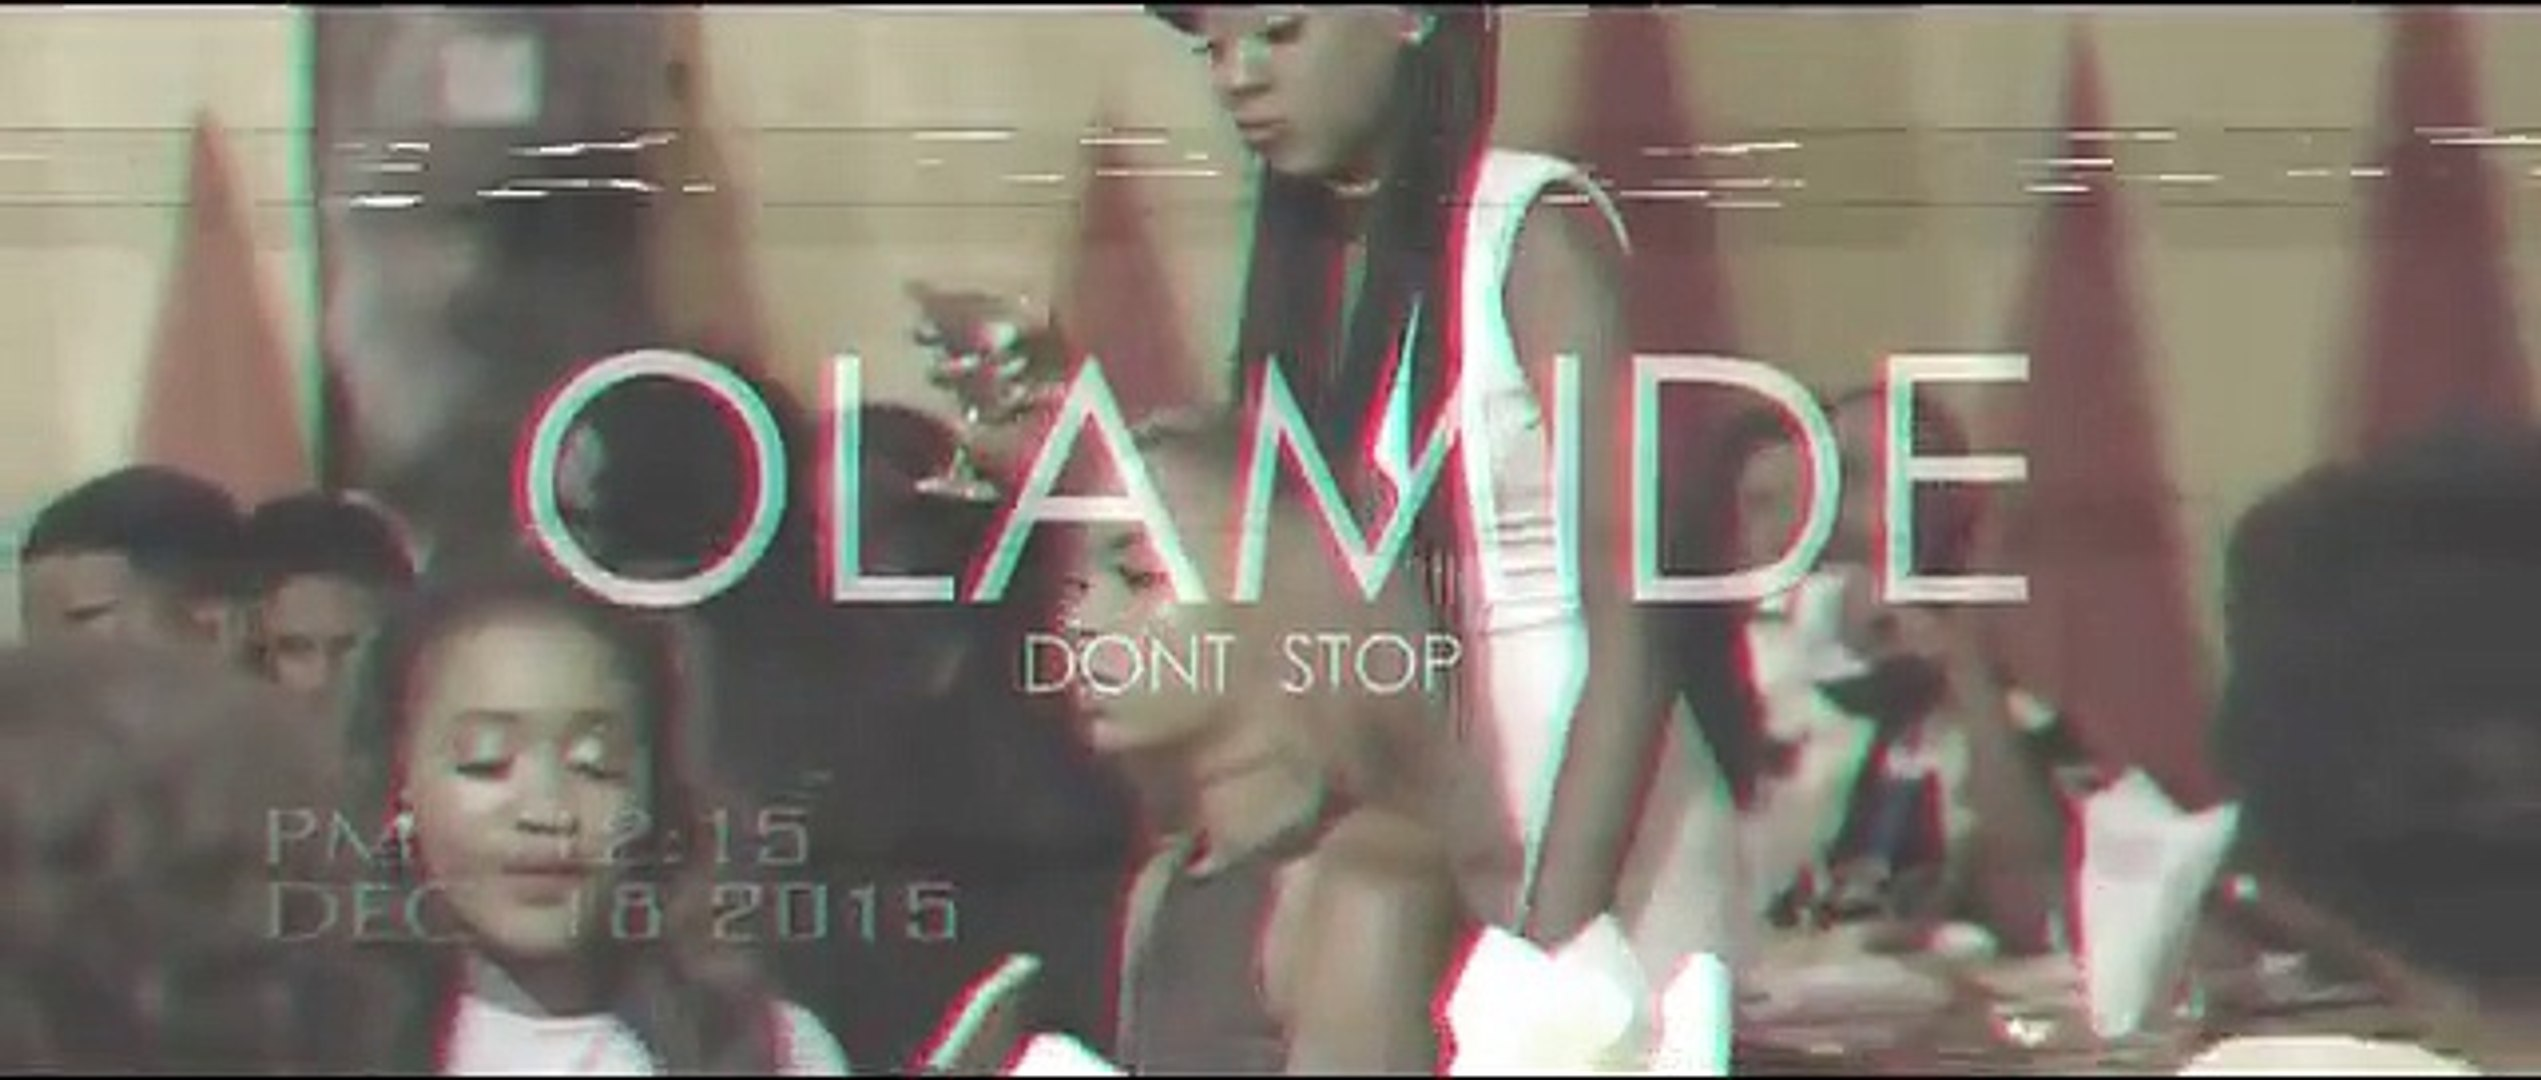 Olamide - Dont Stop [Official Video]